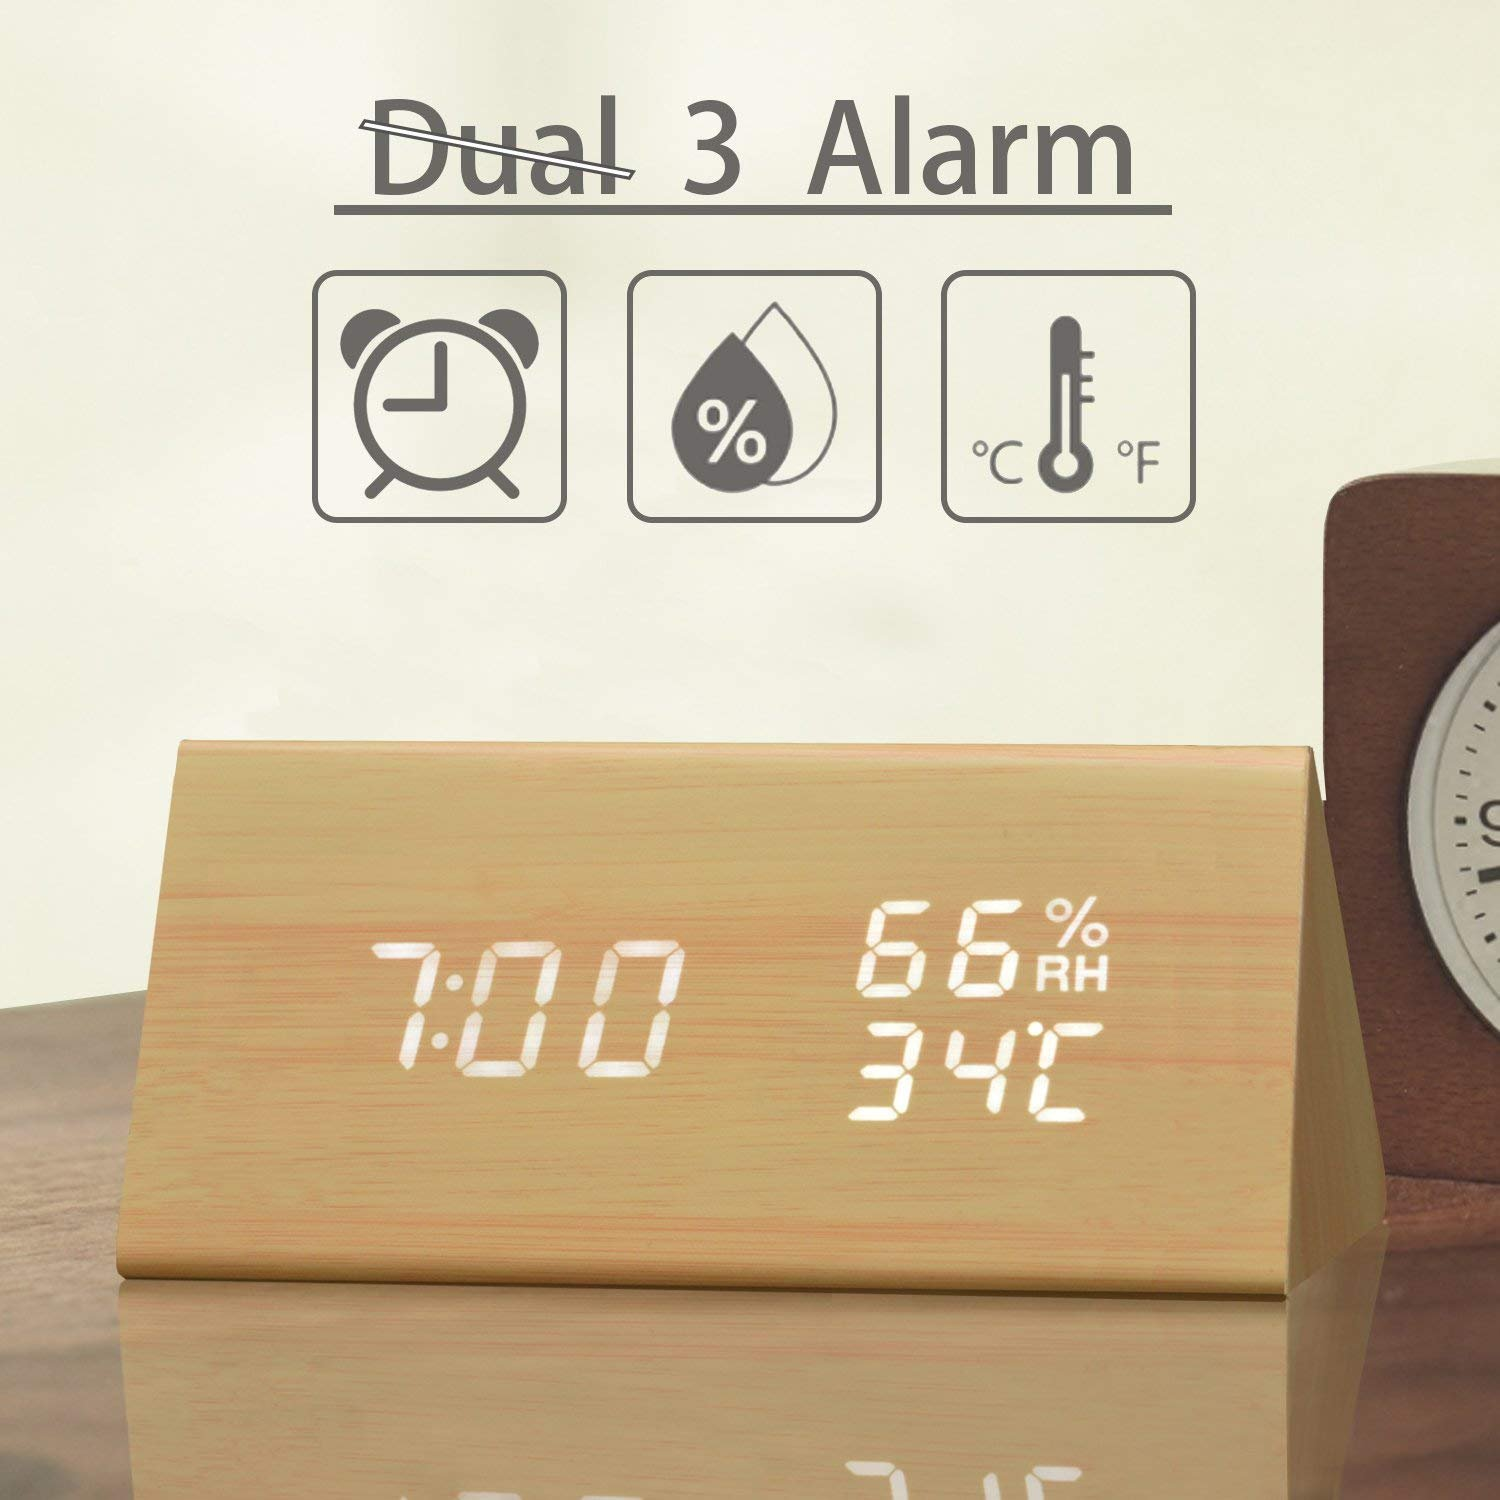 Digital Alarm Clock, with Wooden Electronic LED Time Display, 3 Alarm Settings, Humidity & Temperature Detect, Wood Made Electric Clocks for Bedroom, Bedside, Yellow by JALL (Image #1)